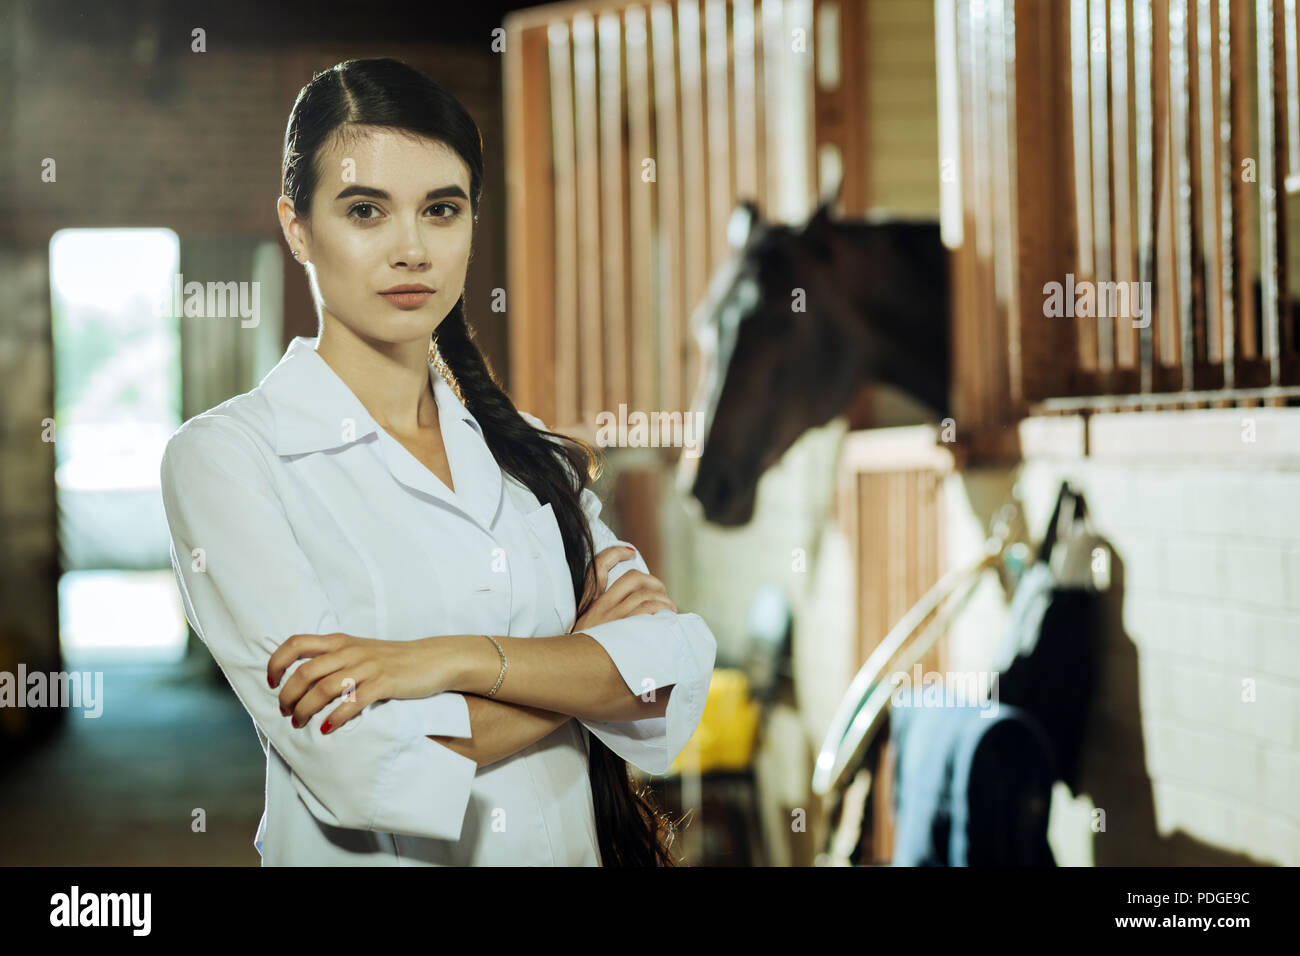 Worker of epidemiological service coming to stable - Stock Image